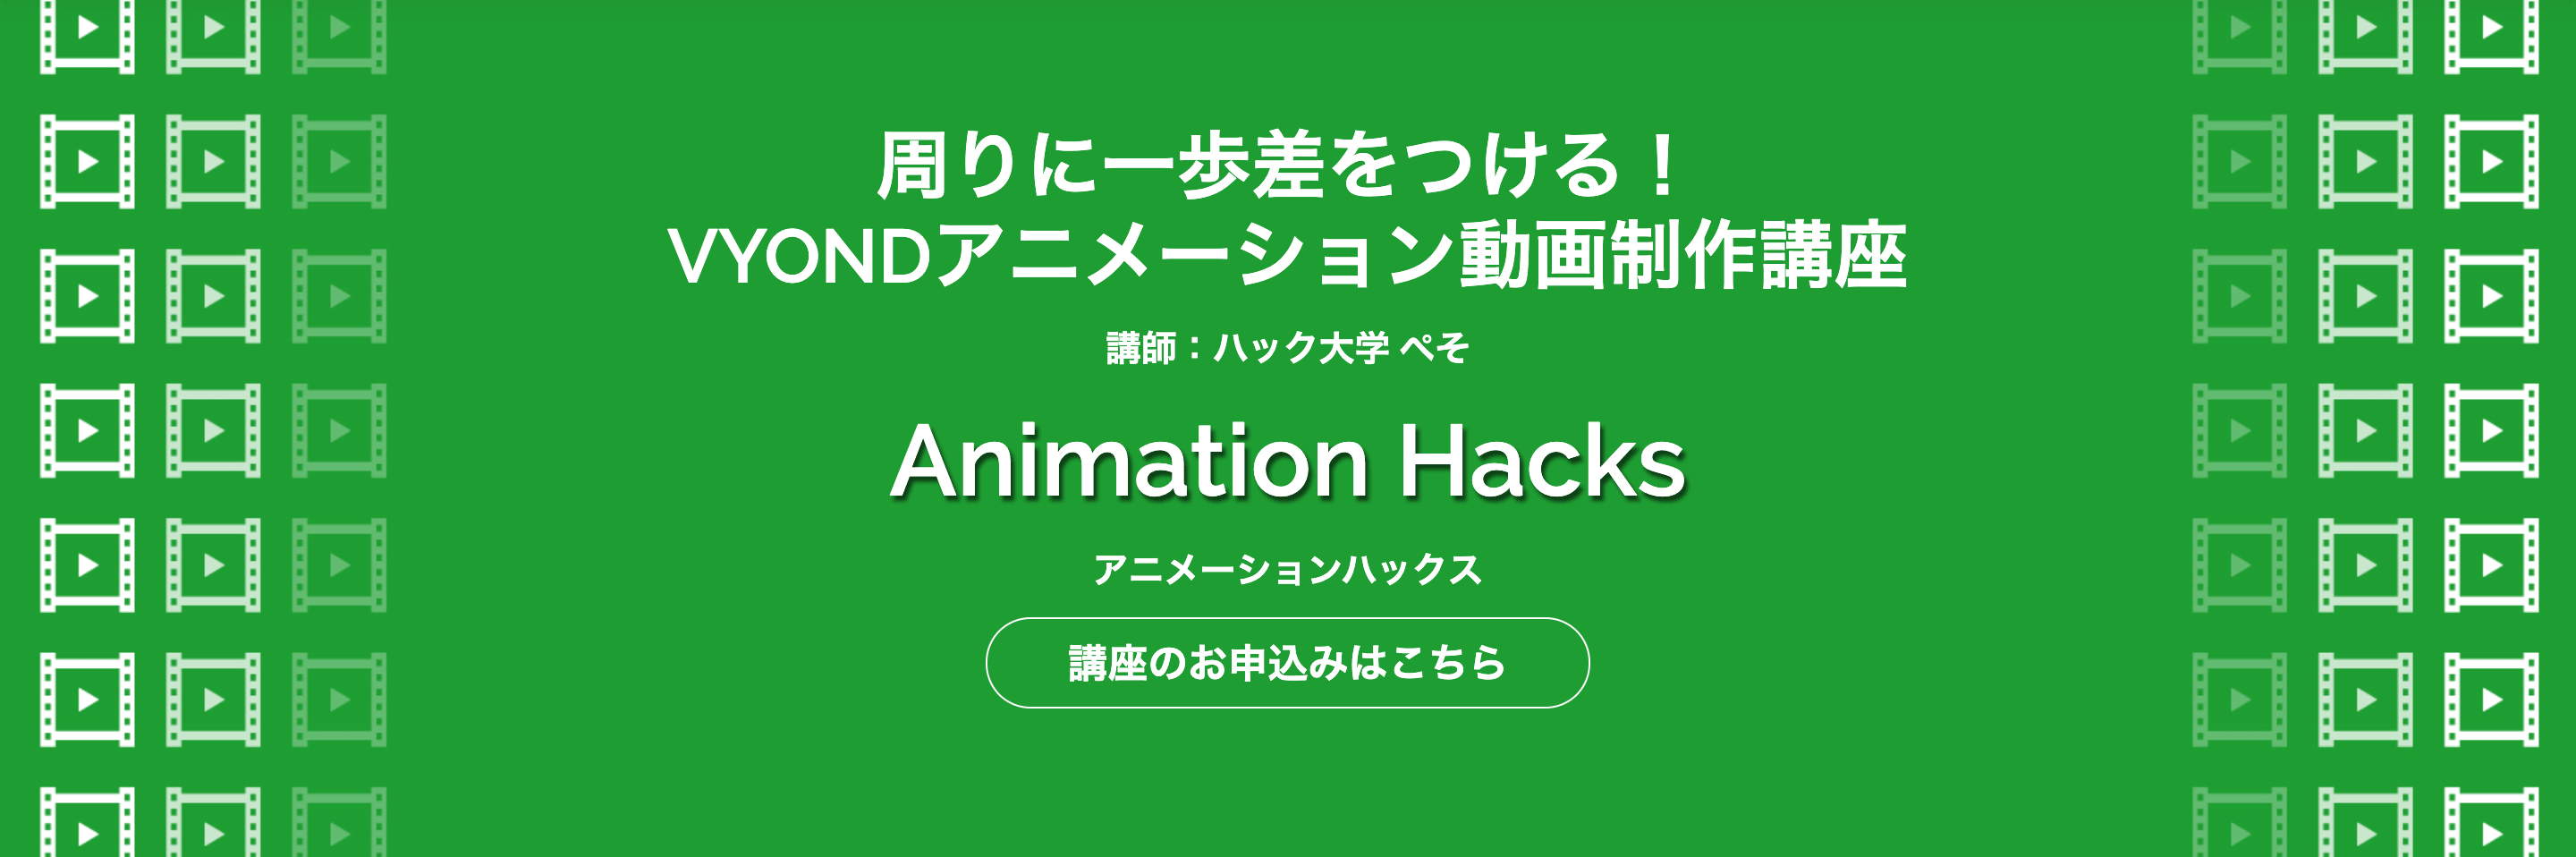 Animetion Hacks